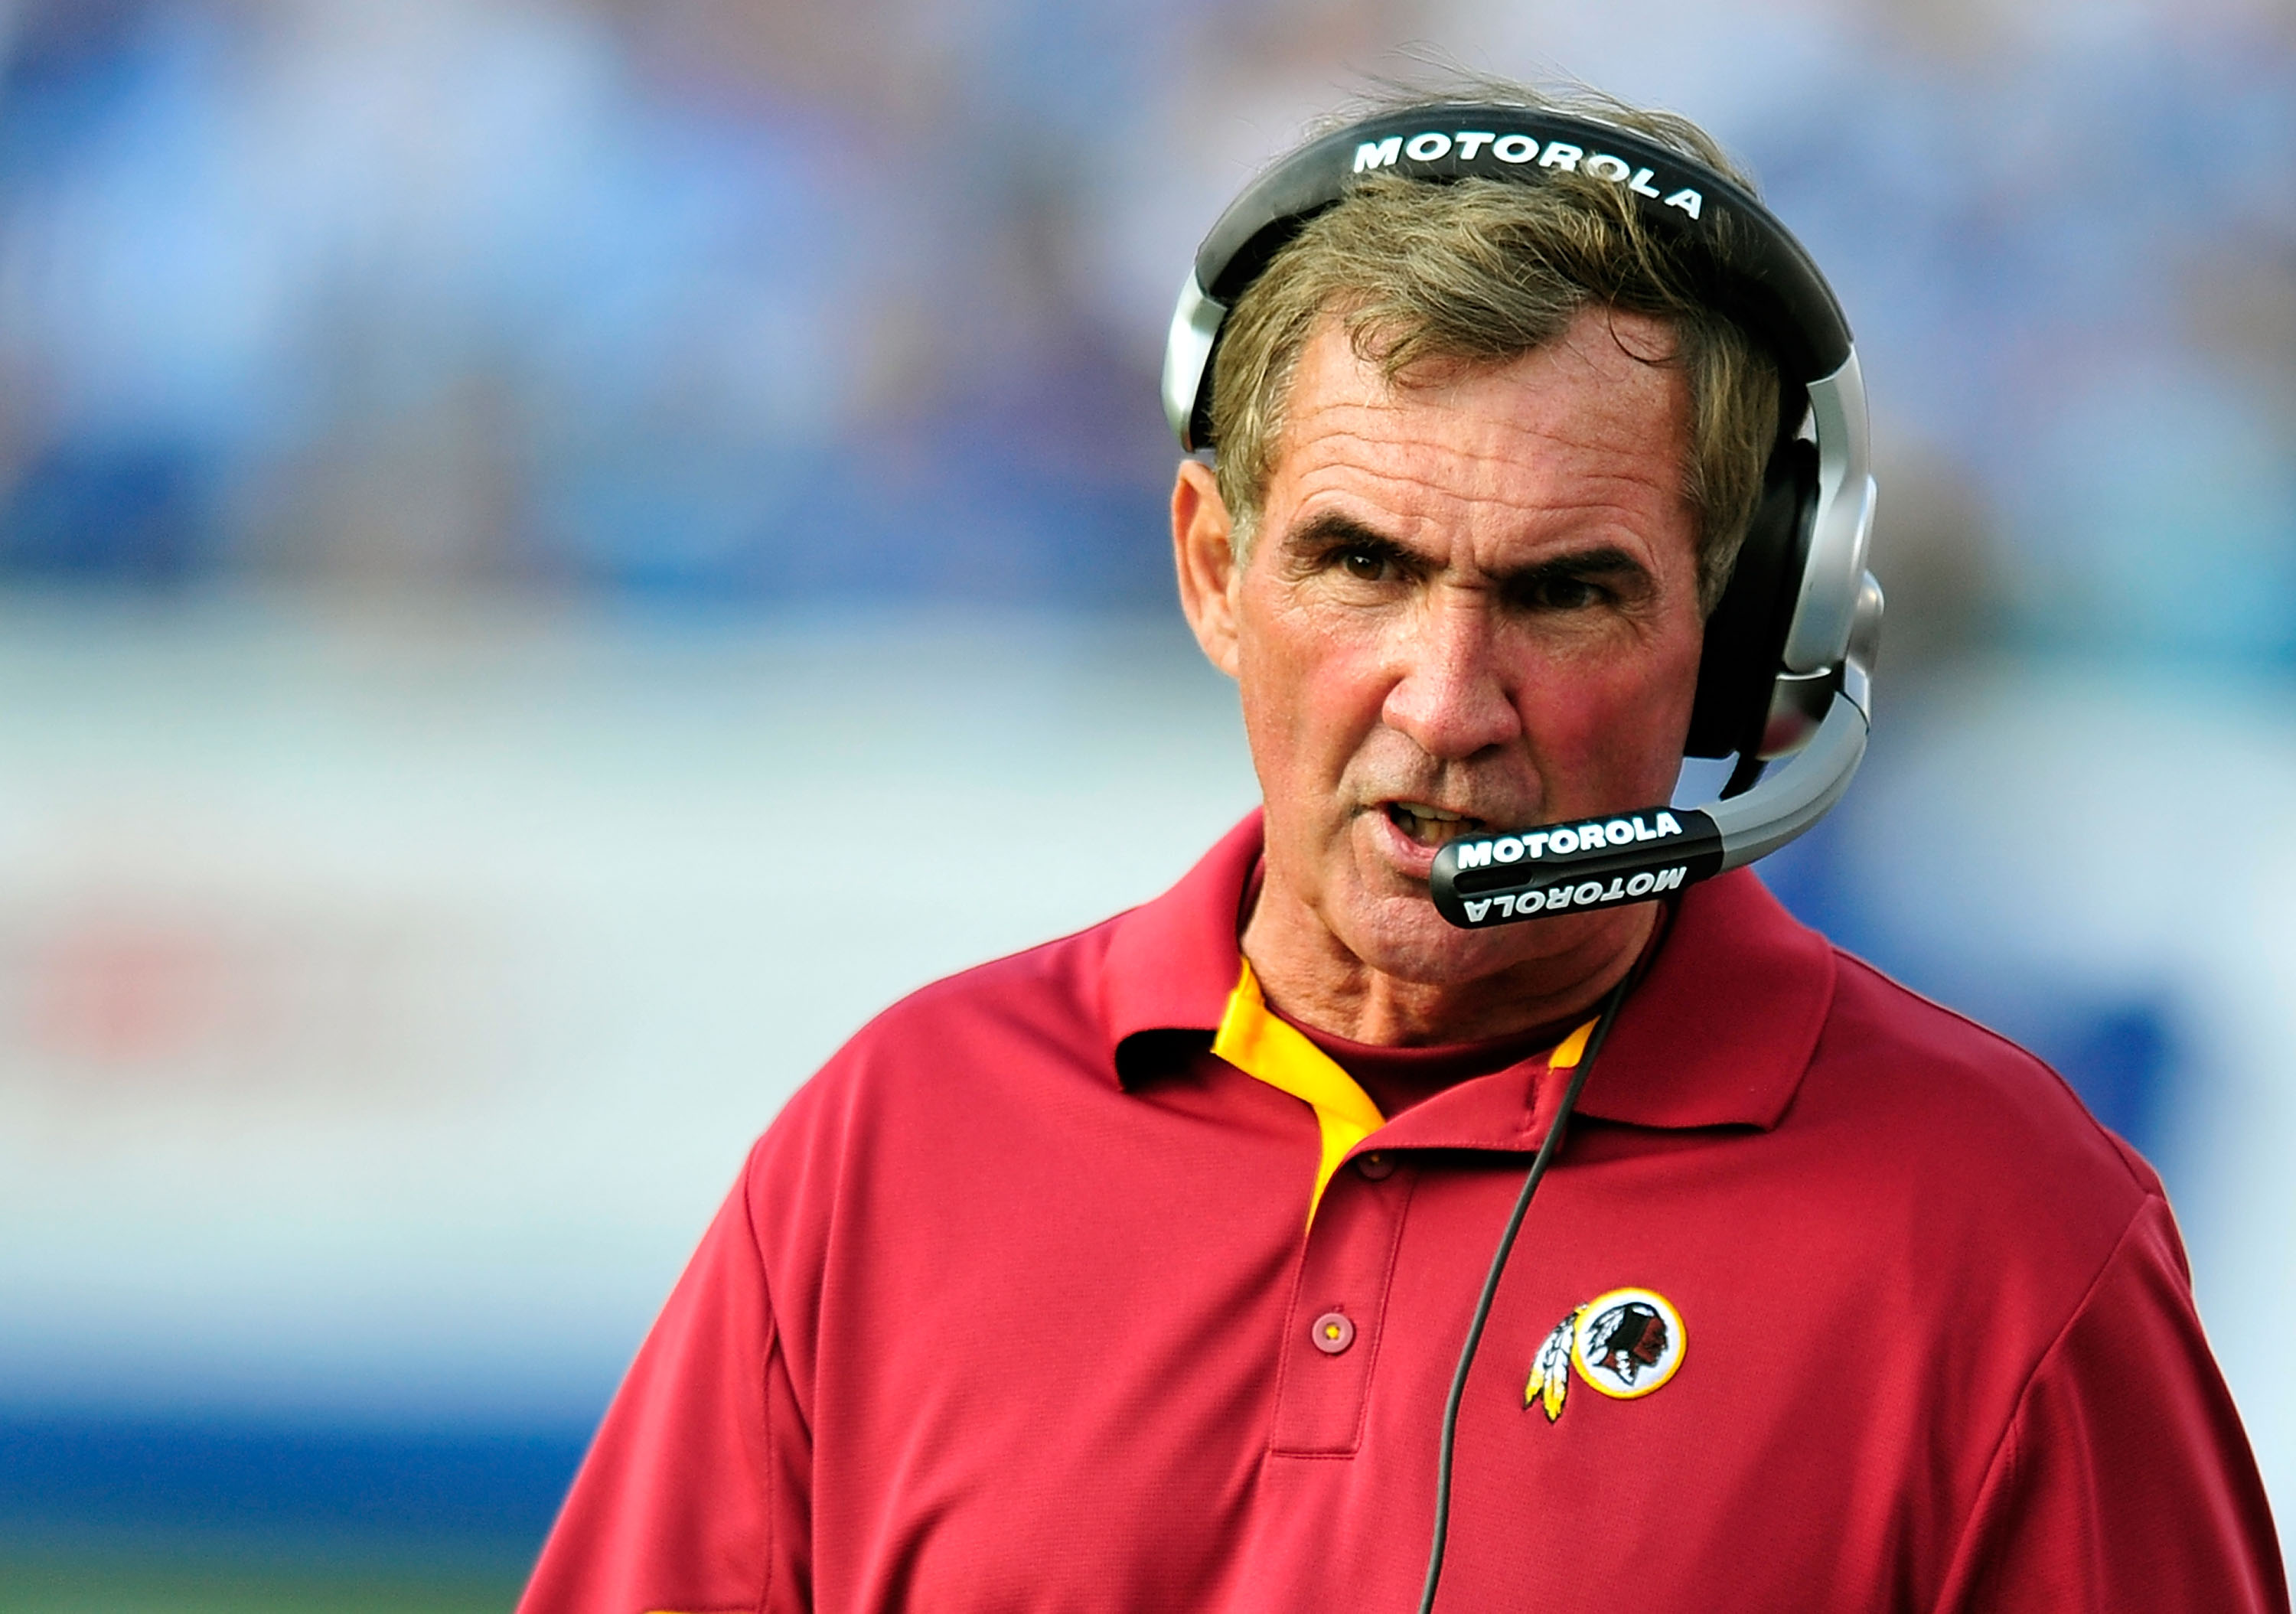 NASHVILLE, TN - NOVEMBER 21:  Coach Mike Shanahan of the Washington Redskins watches his team against the Tennessee Titans at LP Field on November 21, 2010 in Nashville, Tennessee. The Redskins won 19-16 in overtime.  (Photo by Grant Halverson/Getty Image